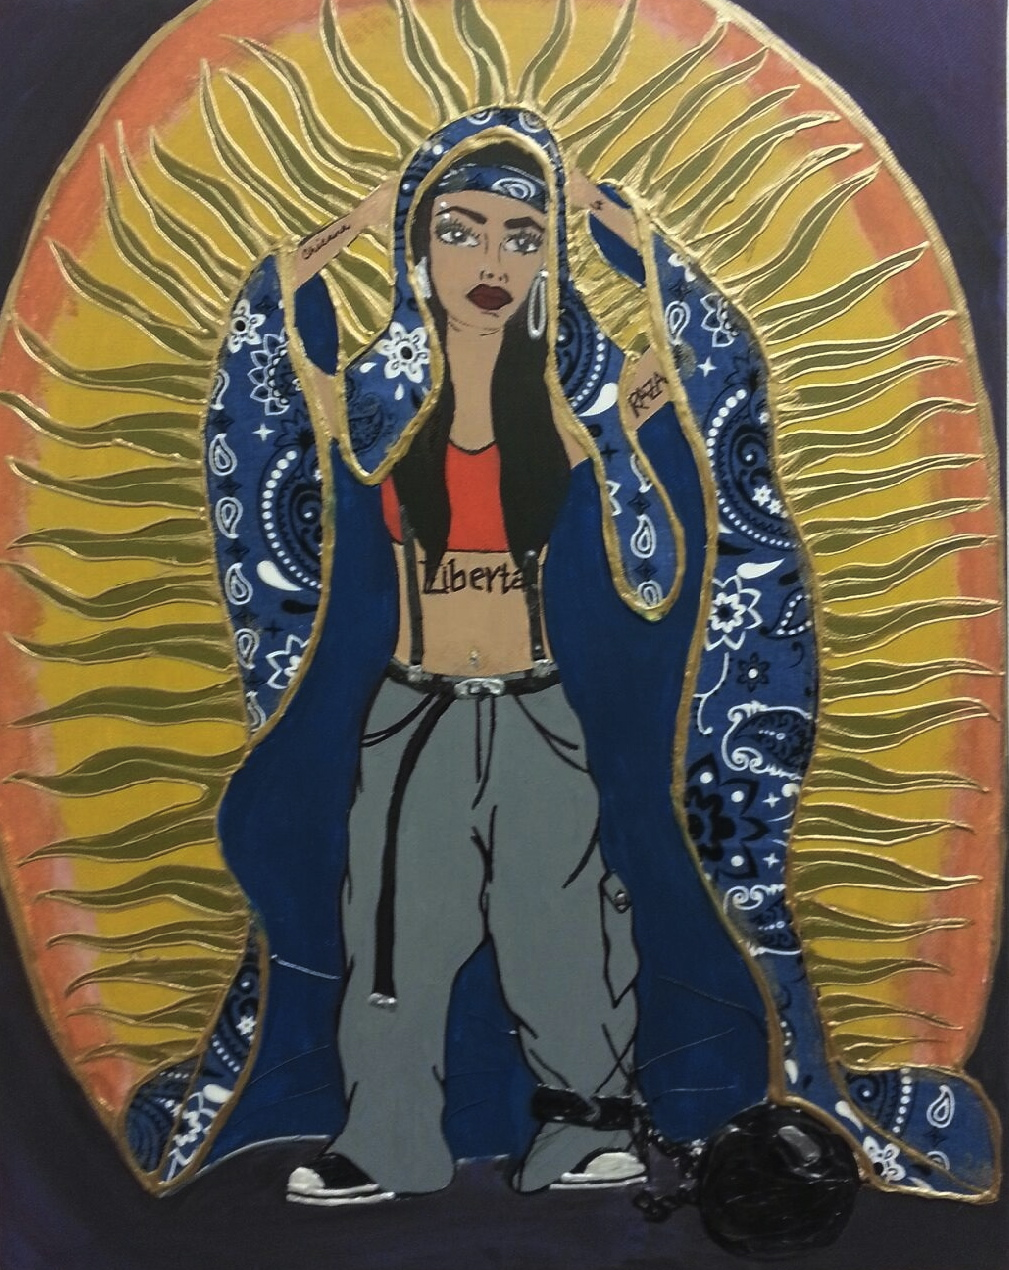 Image of Virgin of Guadalupe as young contemporary woman in neighborhood.